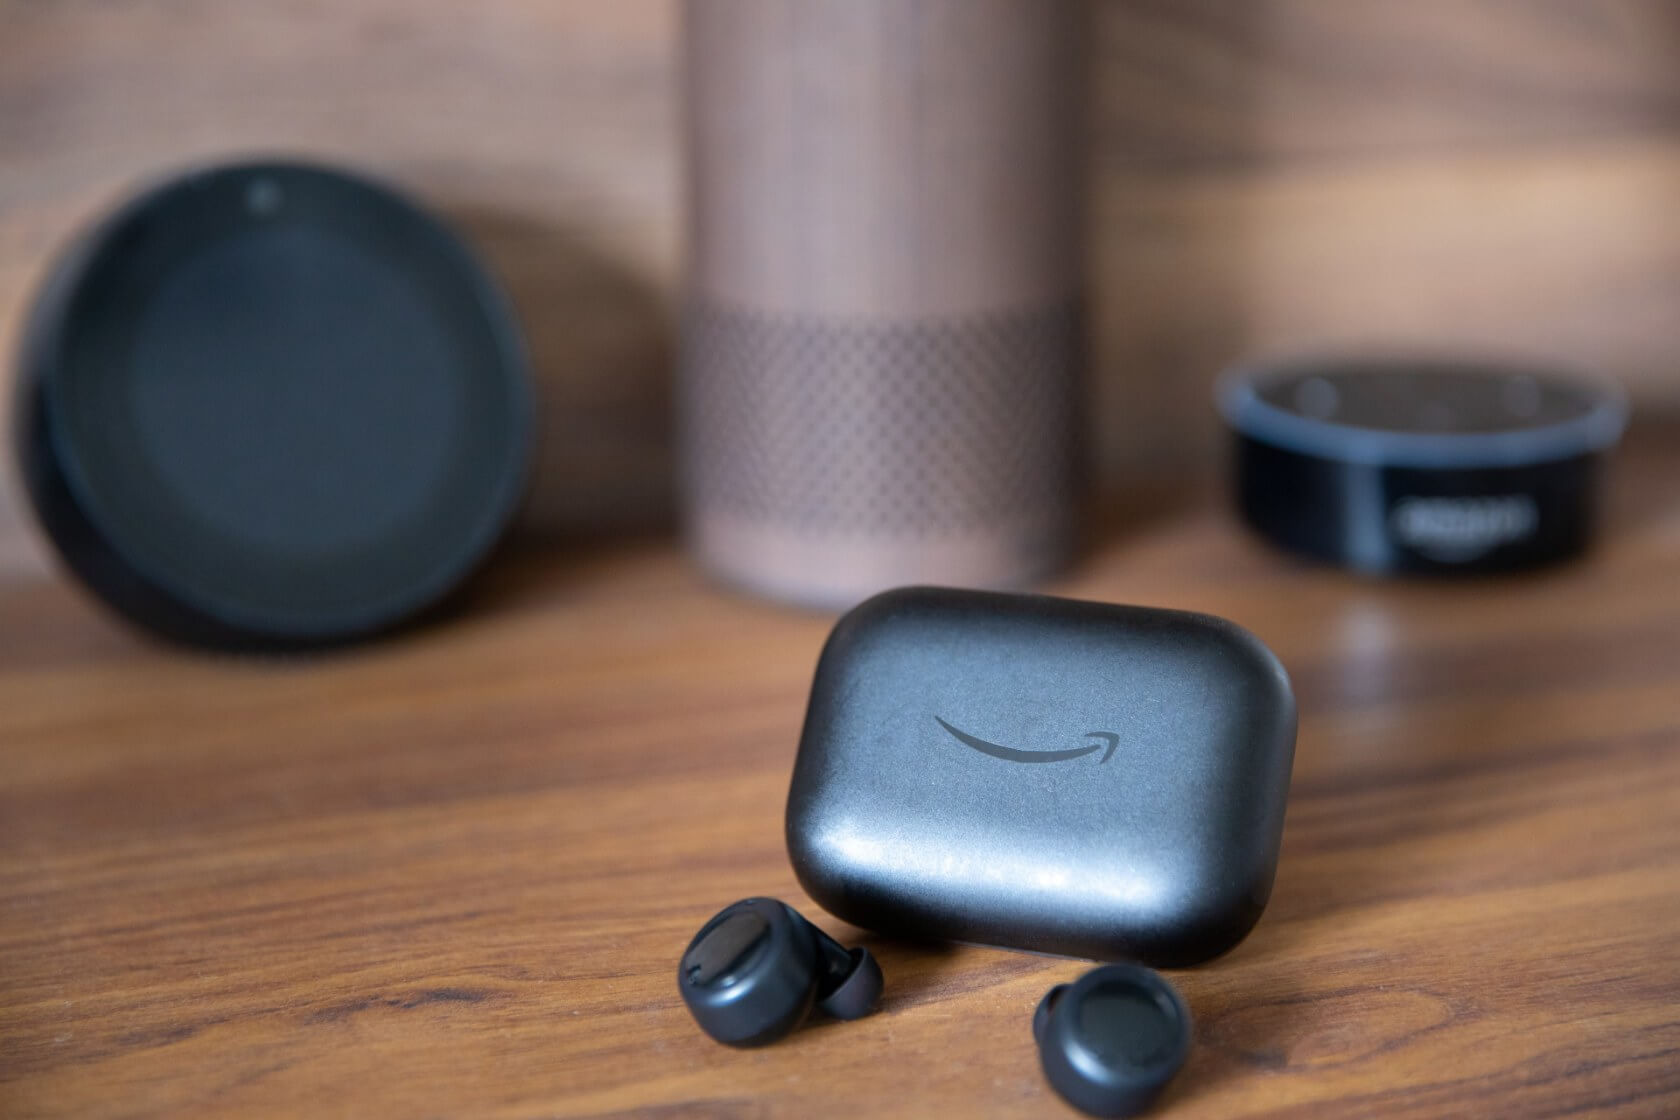 Amazon releases patch for Echo Buds to address overheating issue